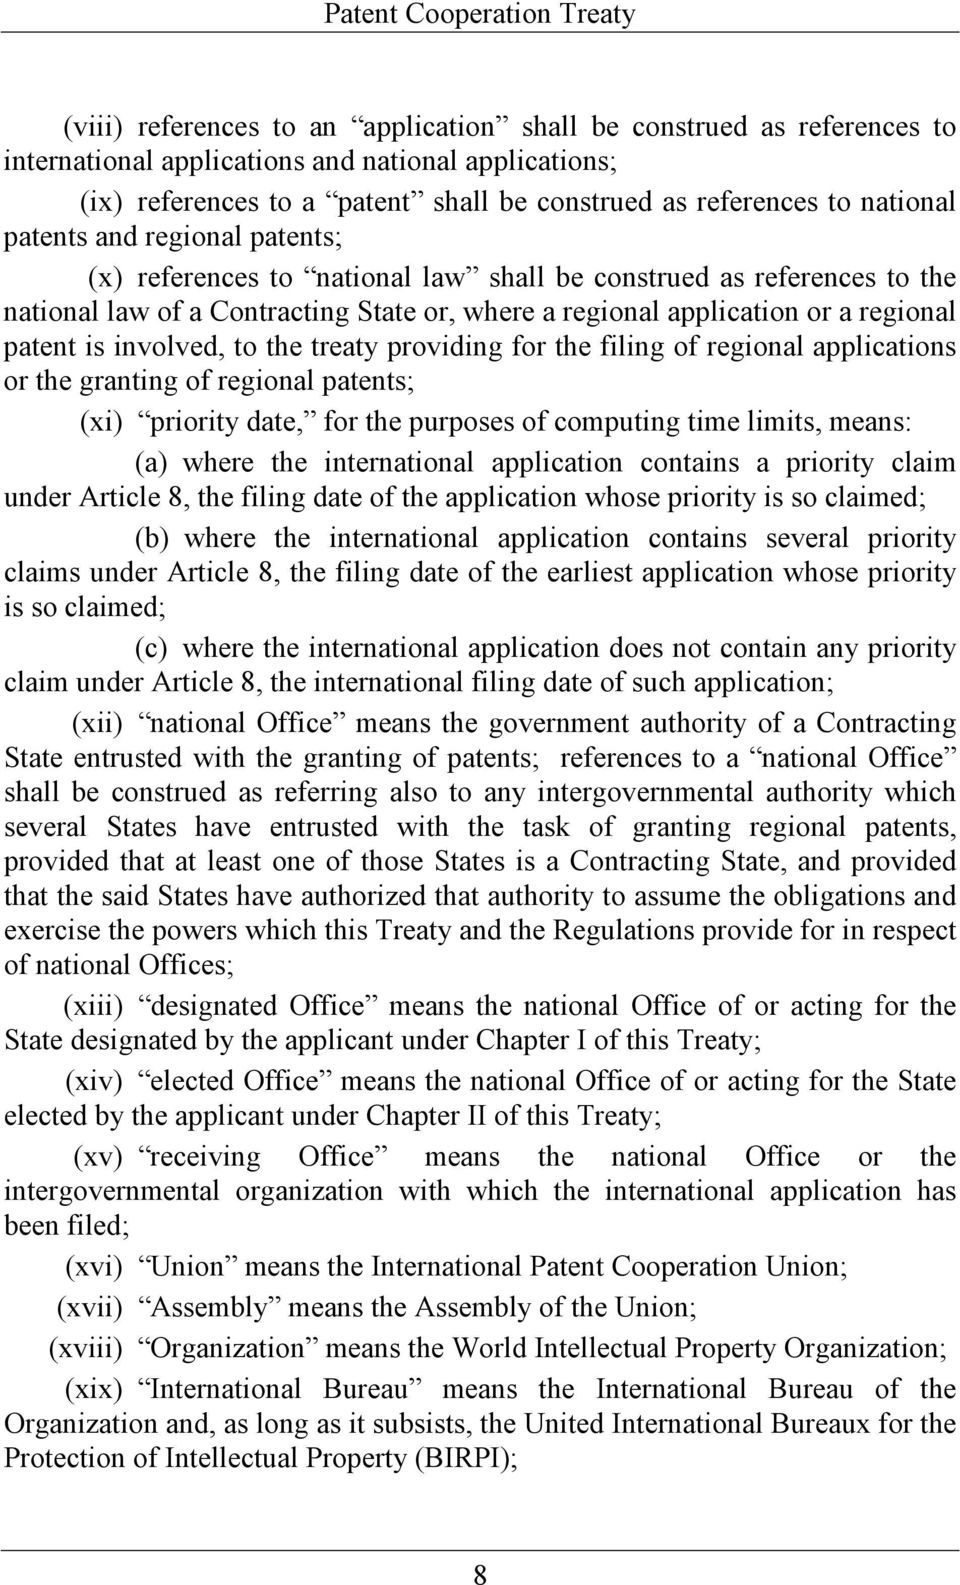 involved, to the treaty providing for the filing of regional applications or the granting of regional patents; (xi) priority date, for the purposes of computing time limits, means: (a) where the